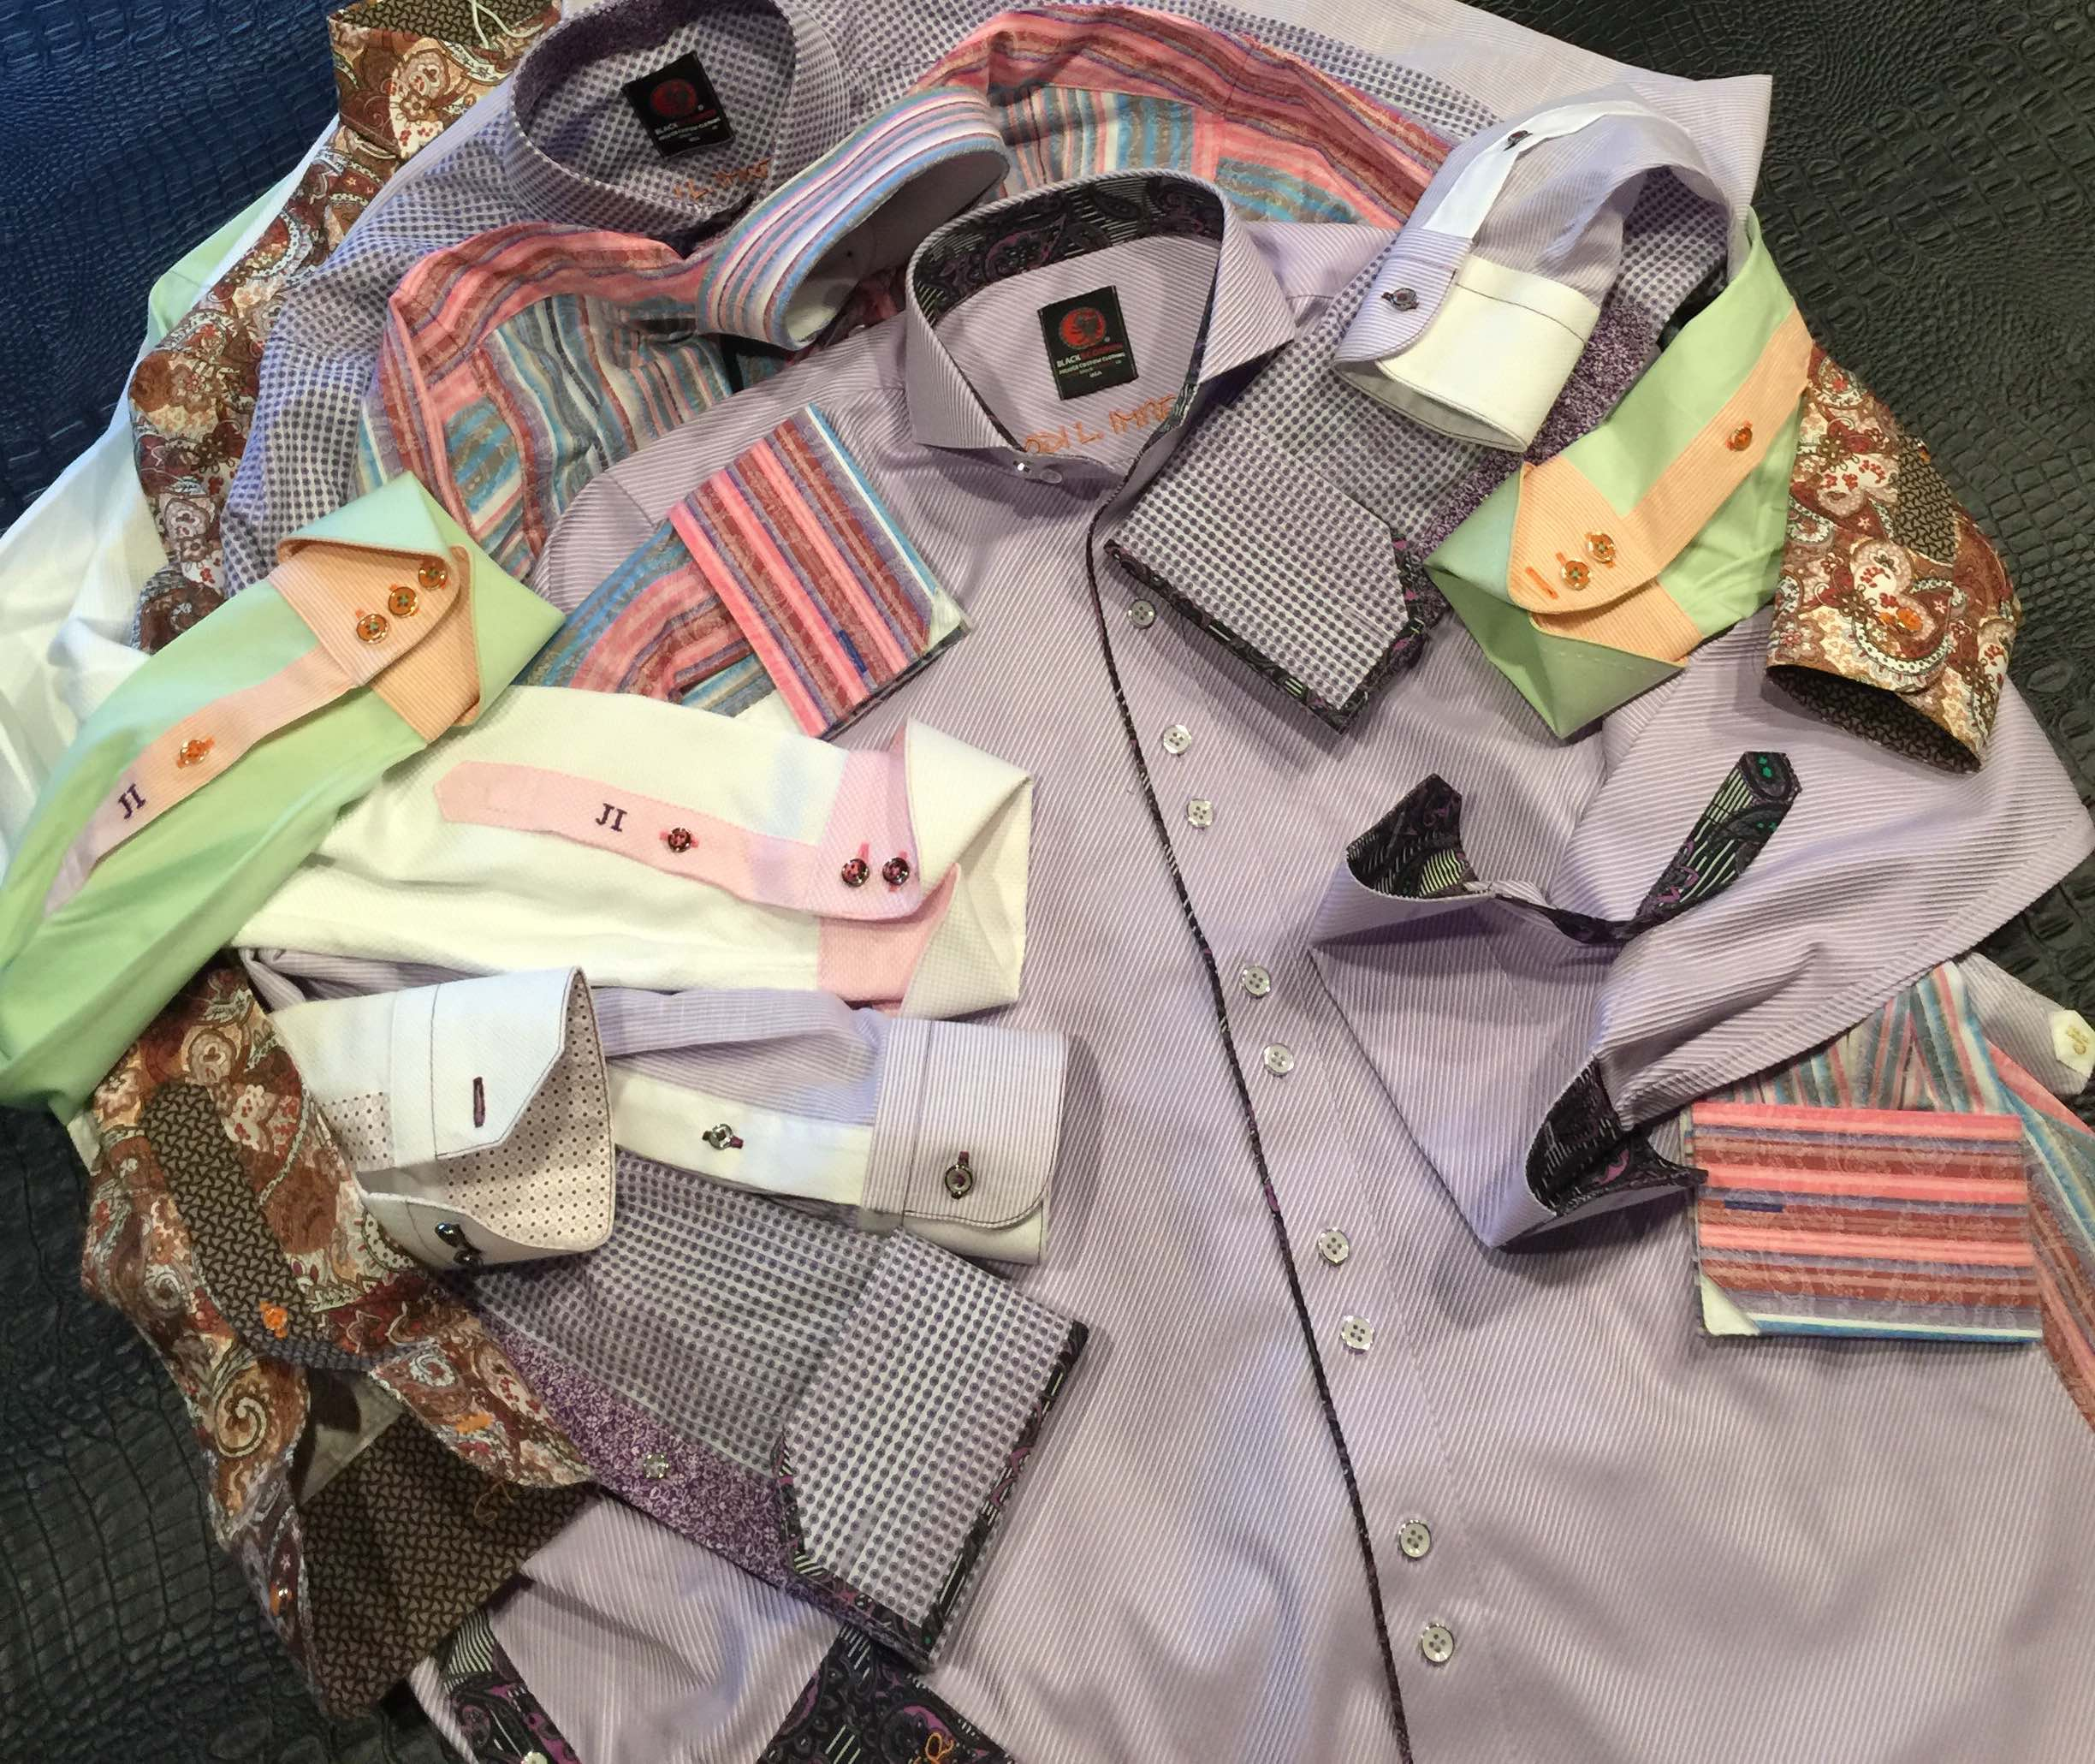 Kalamazoo Custom Suits, Kalamazoo Custom shirts, Kalamazoo Mens suits, Kalamazoo Custom clothing, Black Scorpion Custom Shirts by Sean Chalfin